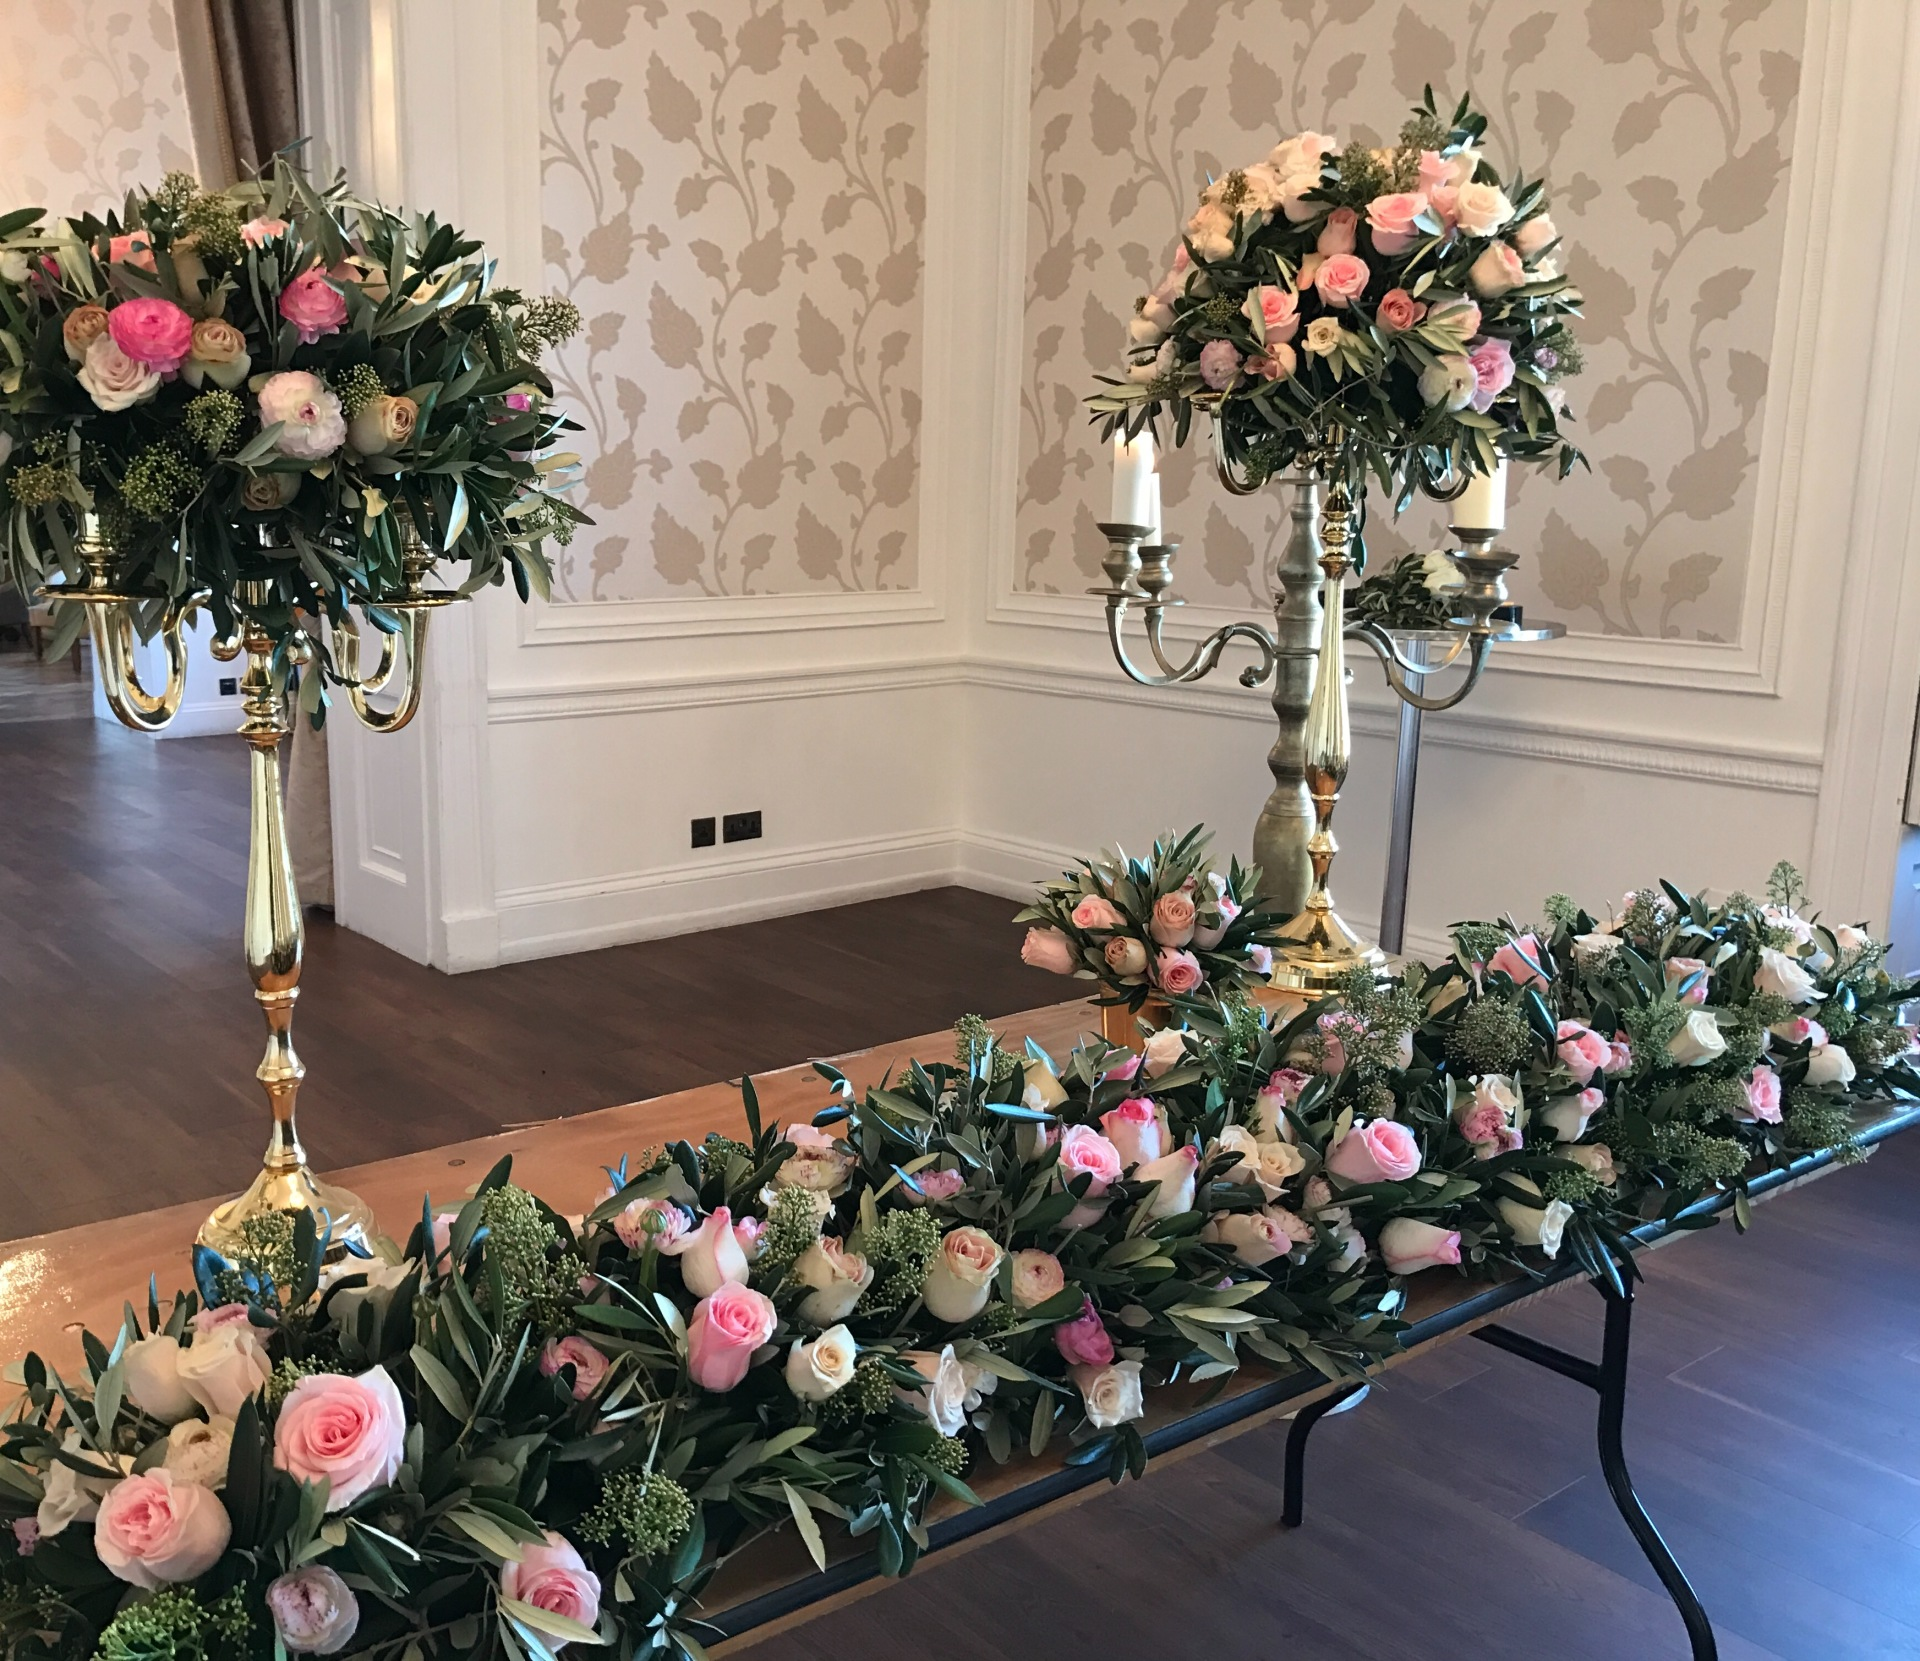 Luxury flowers| rose wedding | floral tablerunner | luxury London florist |london florist |wedding florist